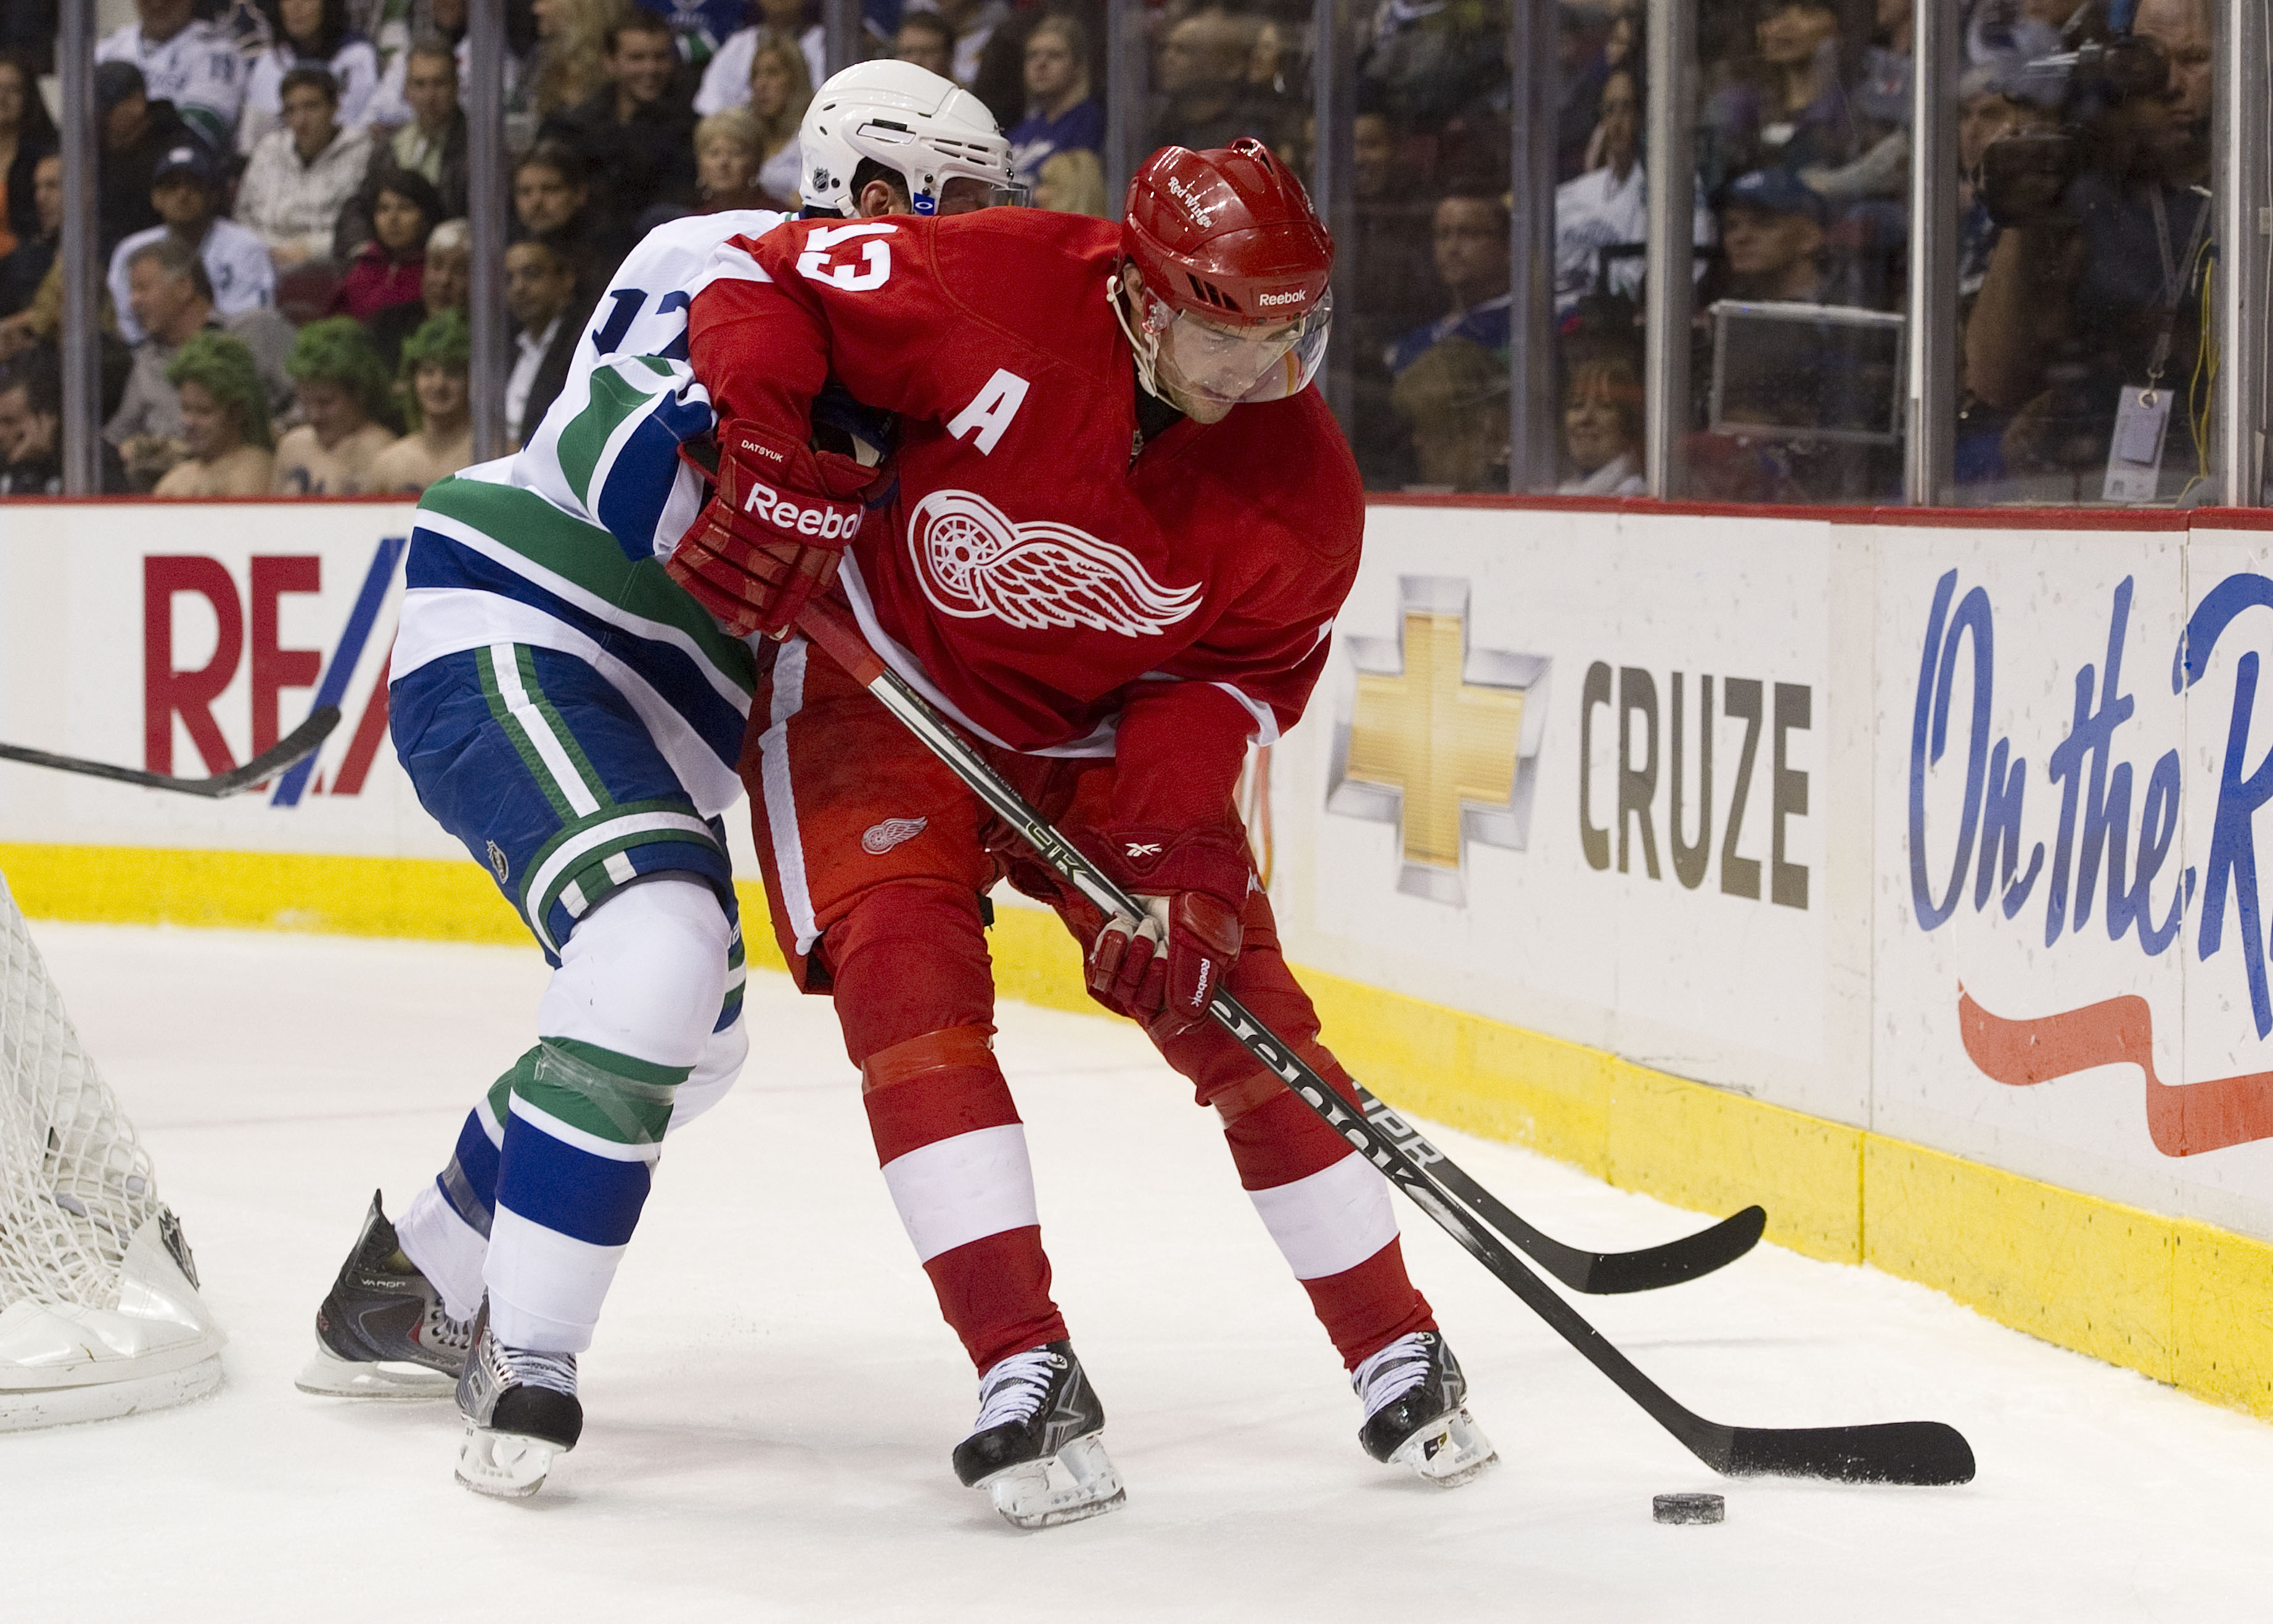 VANCOUVER, CANADA - NOVEMBER 6: Ryan Kesler #17 of the Vancouver Canucks tries to tie up Pavel Datsyuk #13 of the Detroit Red Wings behind the net during the first period in NHL action on November 06, 2010 at Rogers Arena in Vancouver, British Columbia, C